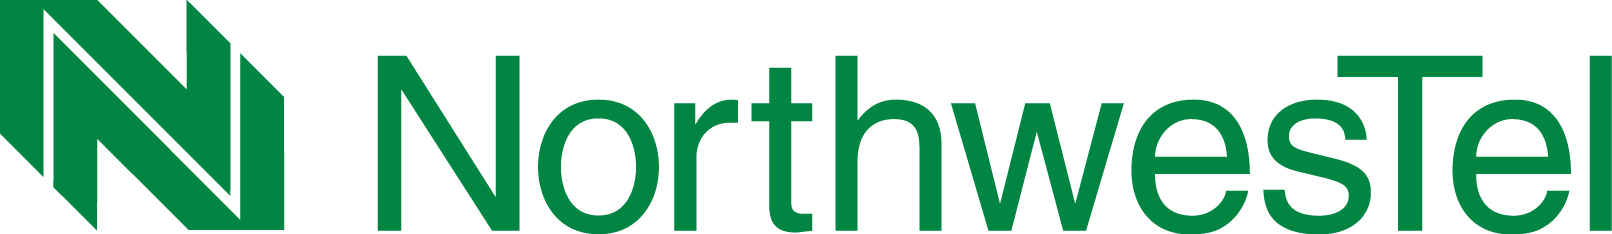 Northwestel logo